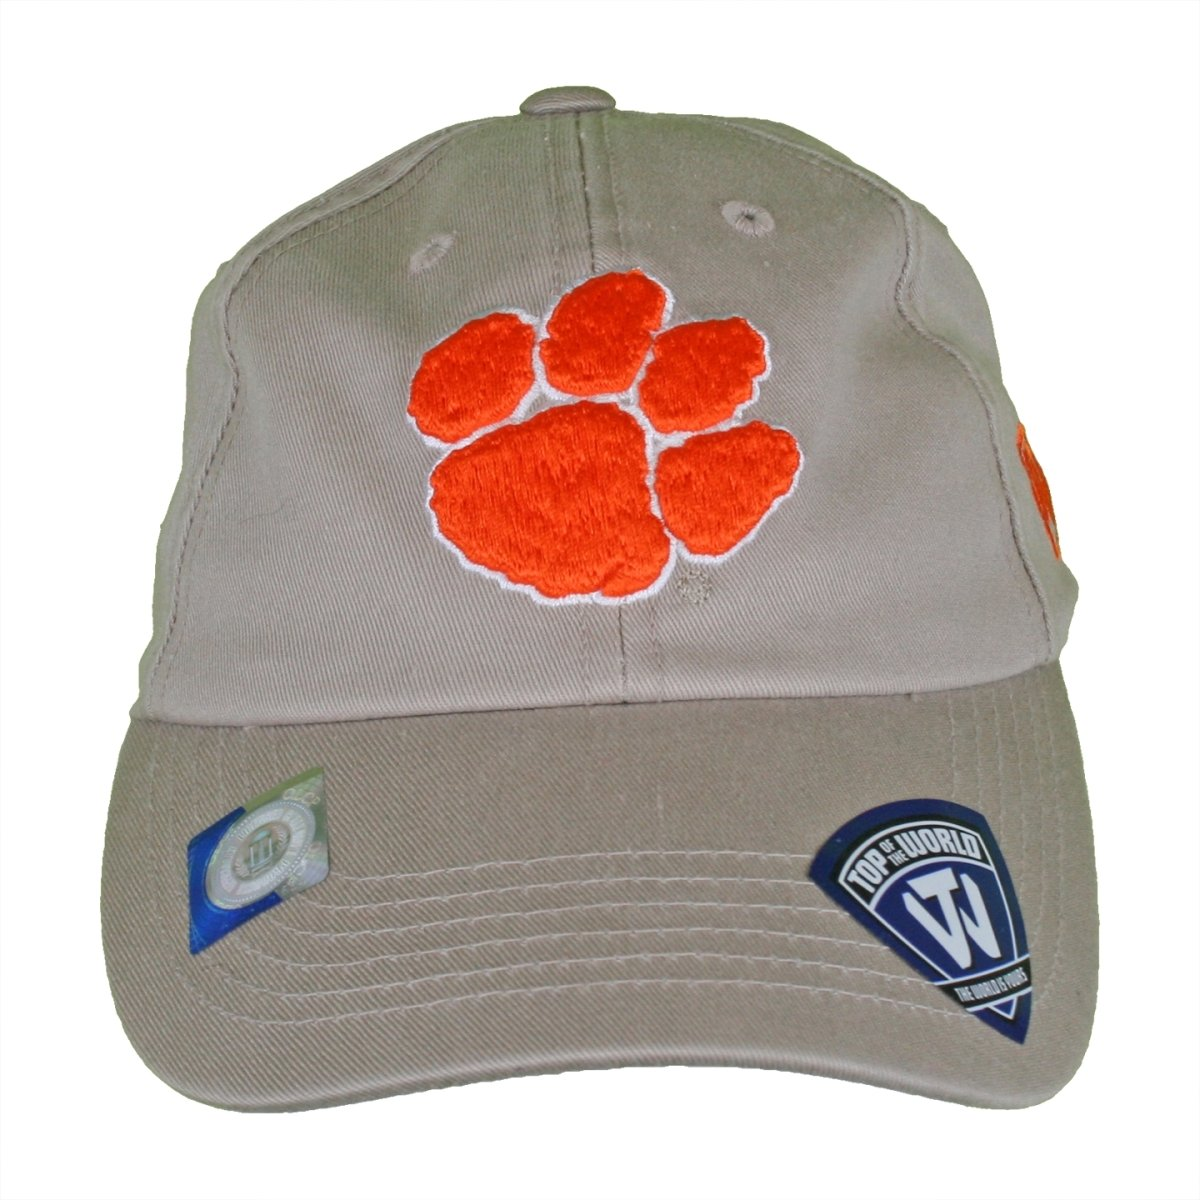 Top of the World Clemson Tigers Pawprint Washed Cotton Letterman Fitted Hat - Mr. Knickerbocker